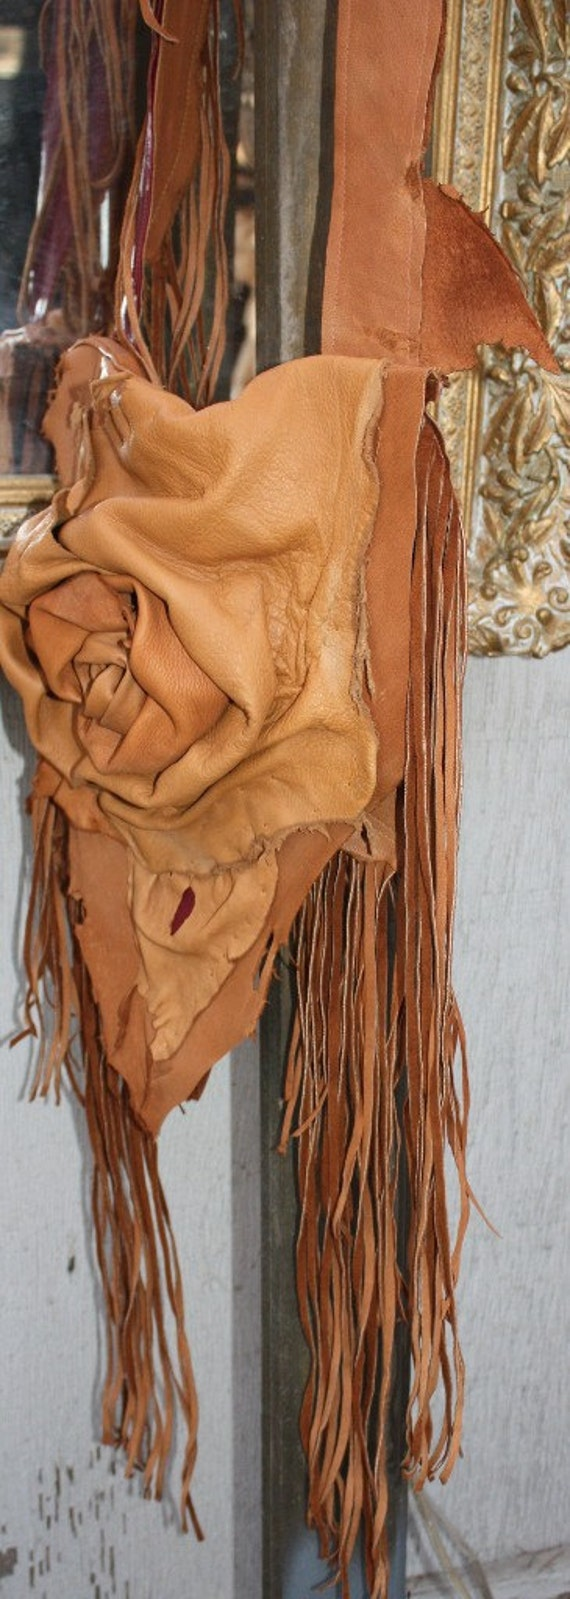 showdiva designs Asymmetrical brown Leather Bag Purse Necklace LoNg FriNgE n Hand Sculpted Flower